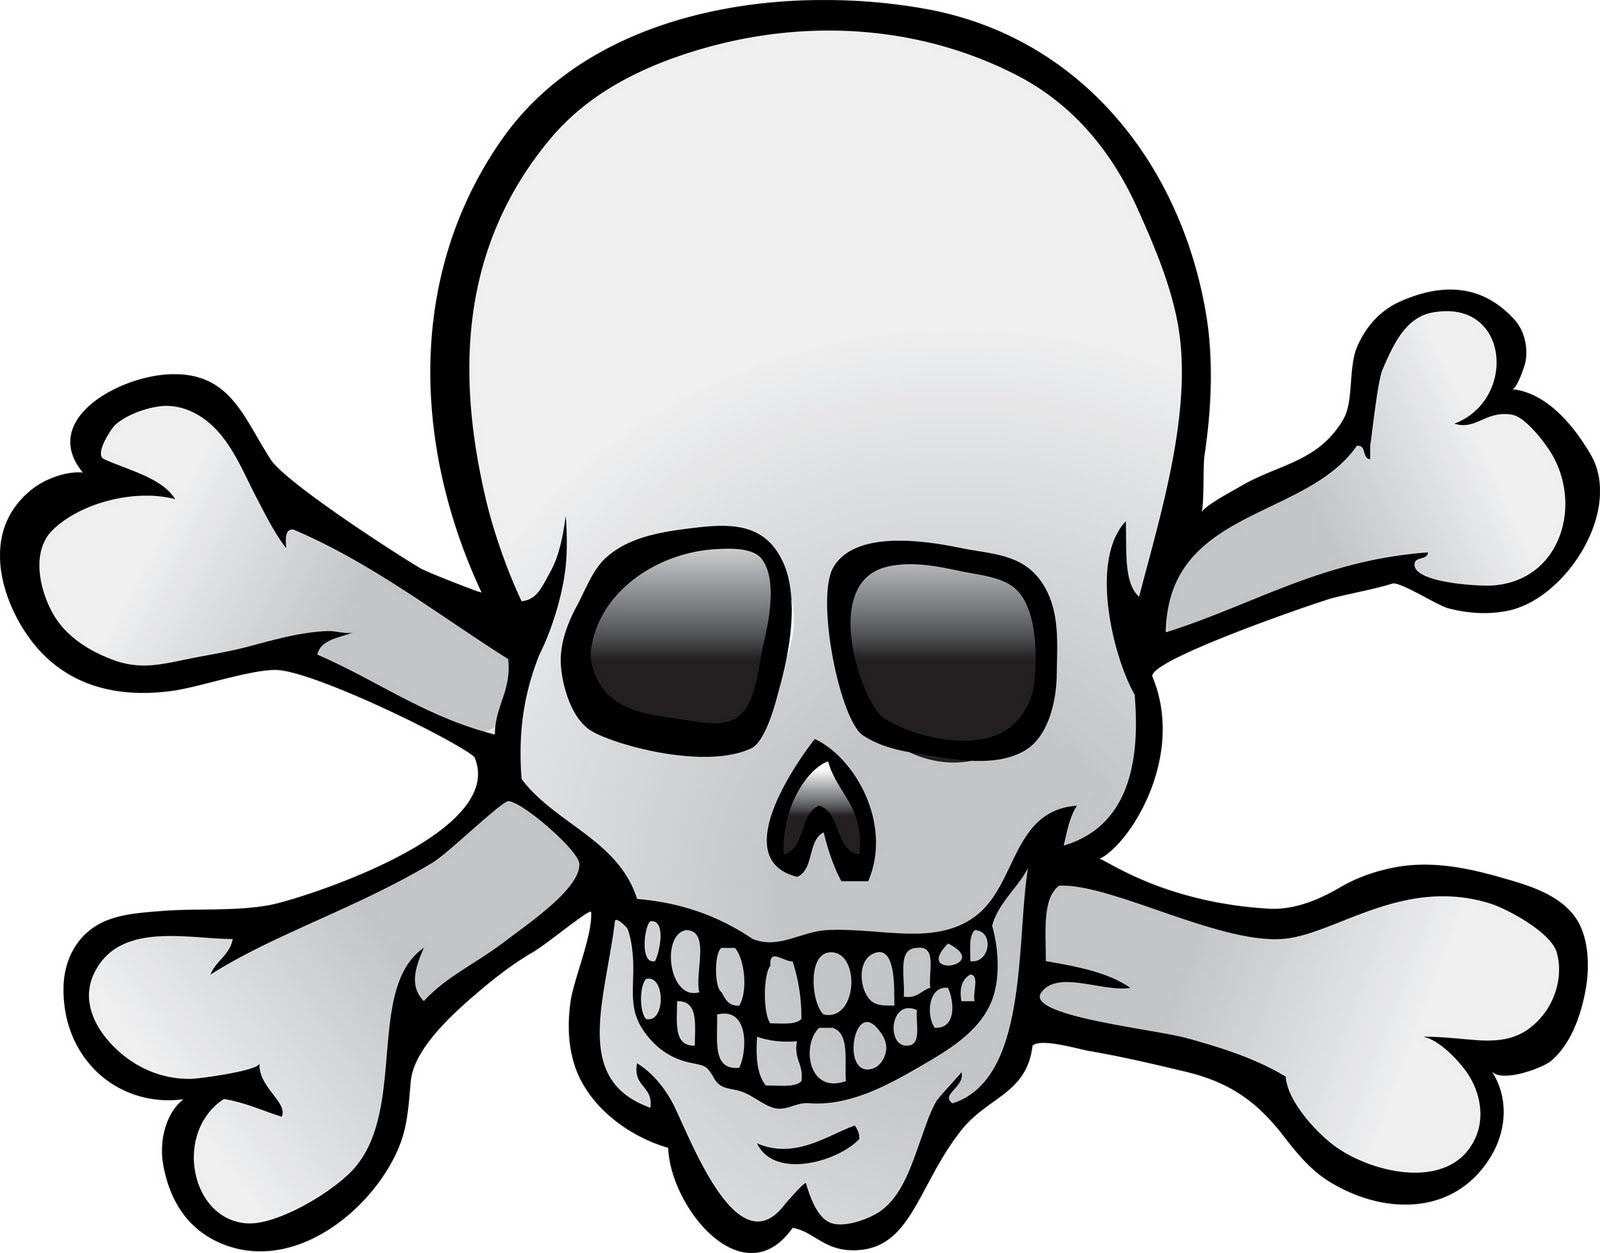 Pirate Skull and Crossbones - Bing images